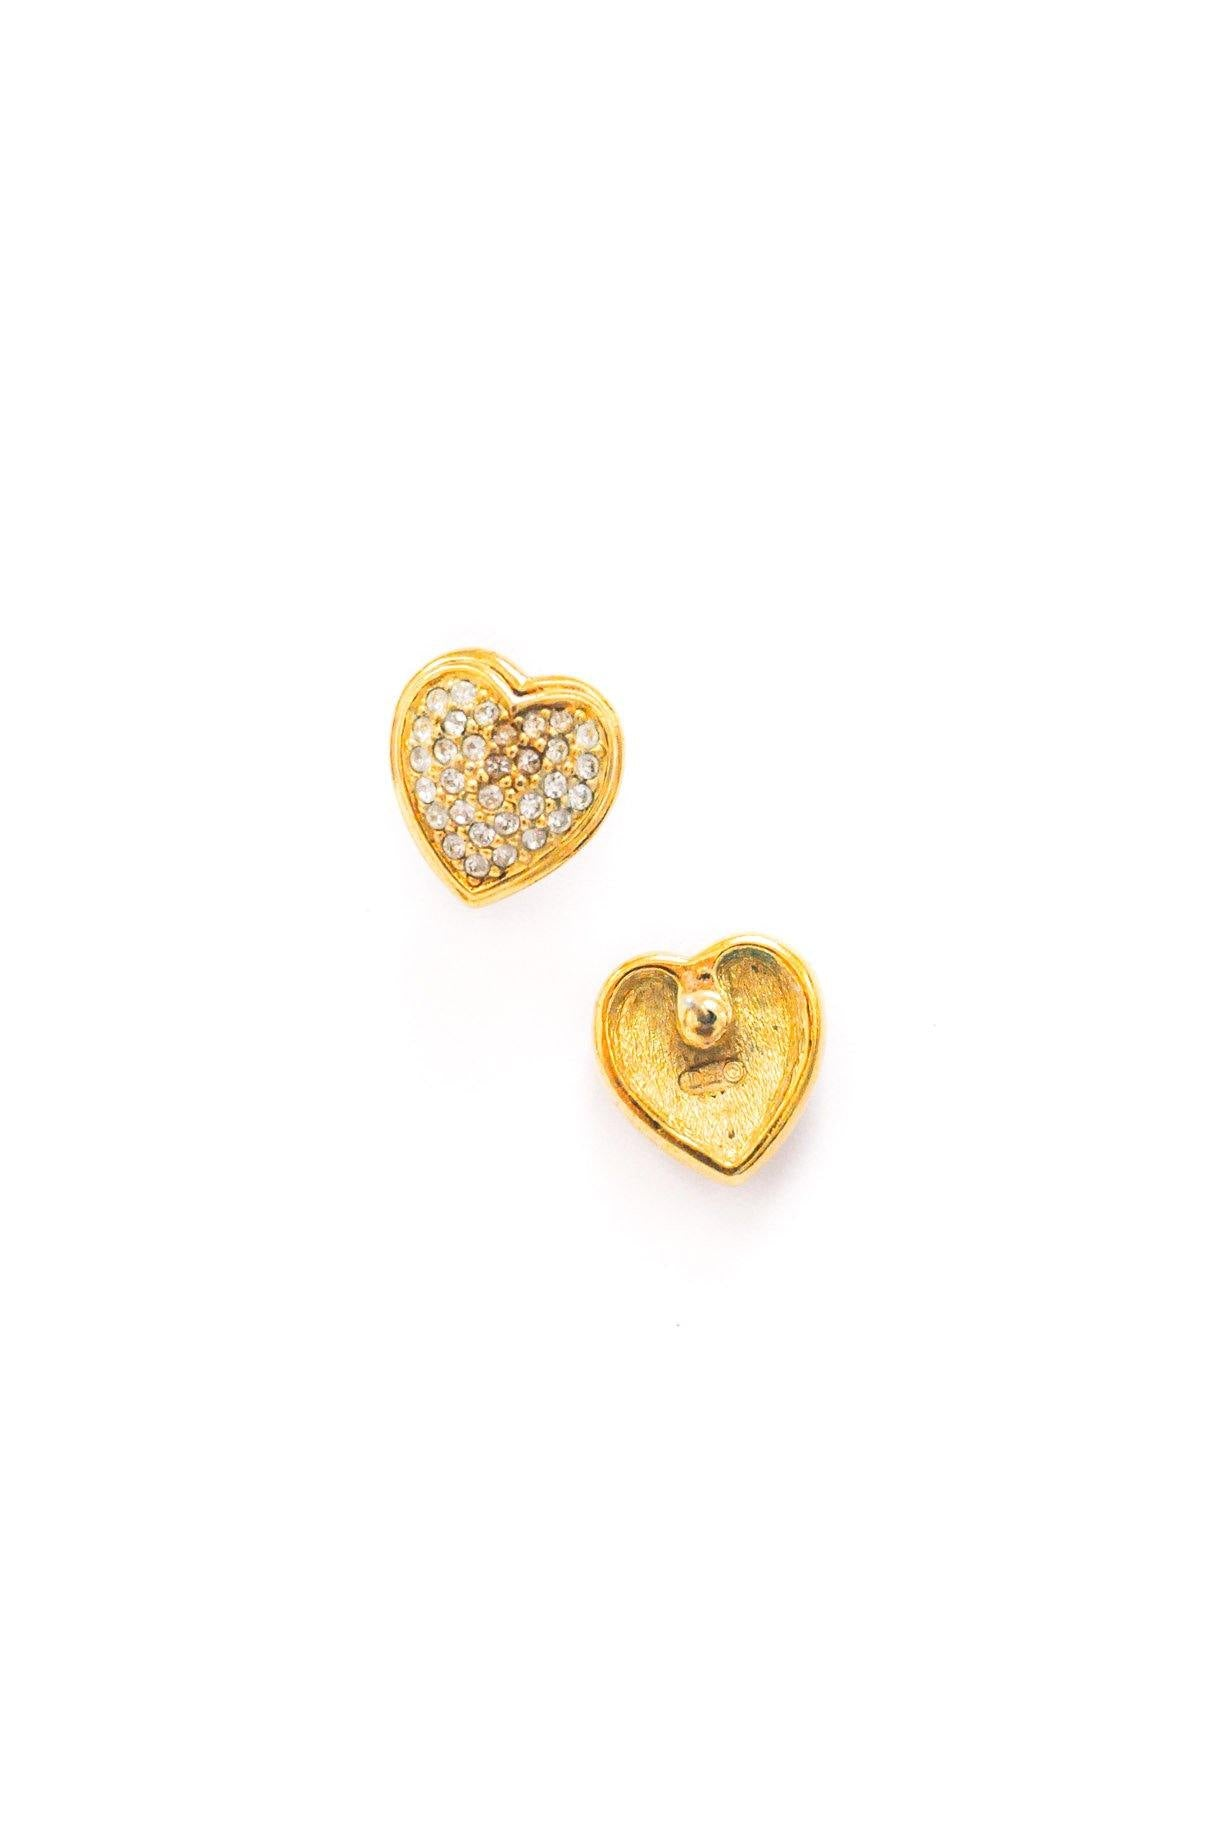 Christian Dior Rhinestone Heart Pierced Earrings